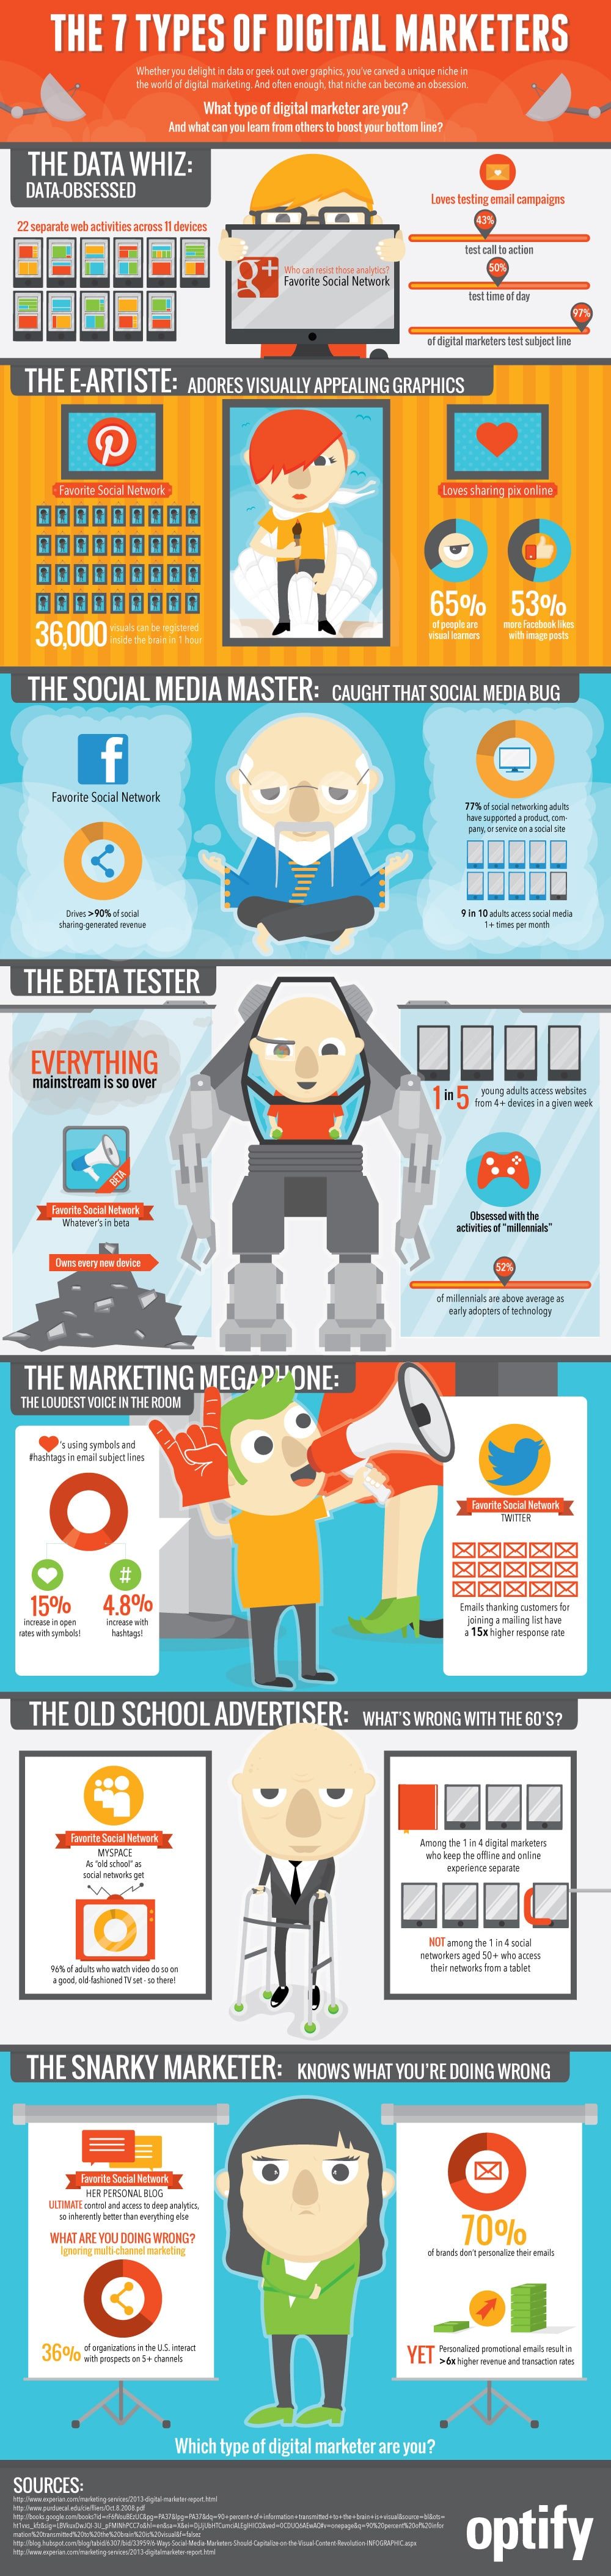 7 Types Of Digital Marketers: Modern Marketing Humor [Infographic]